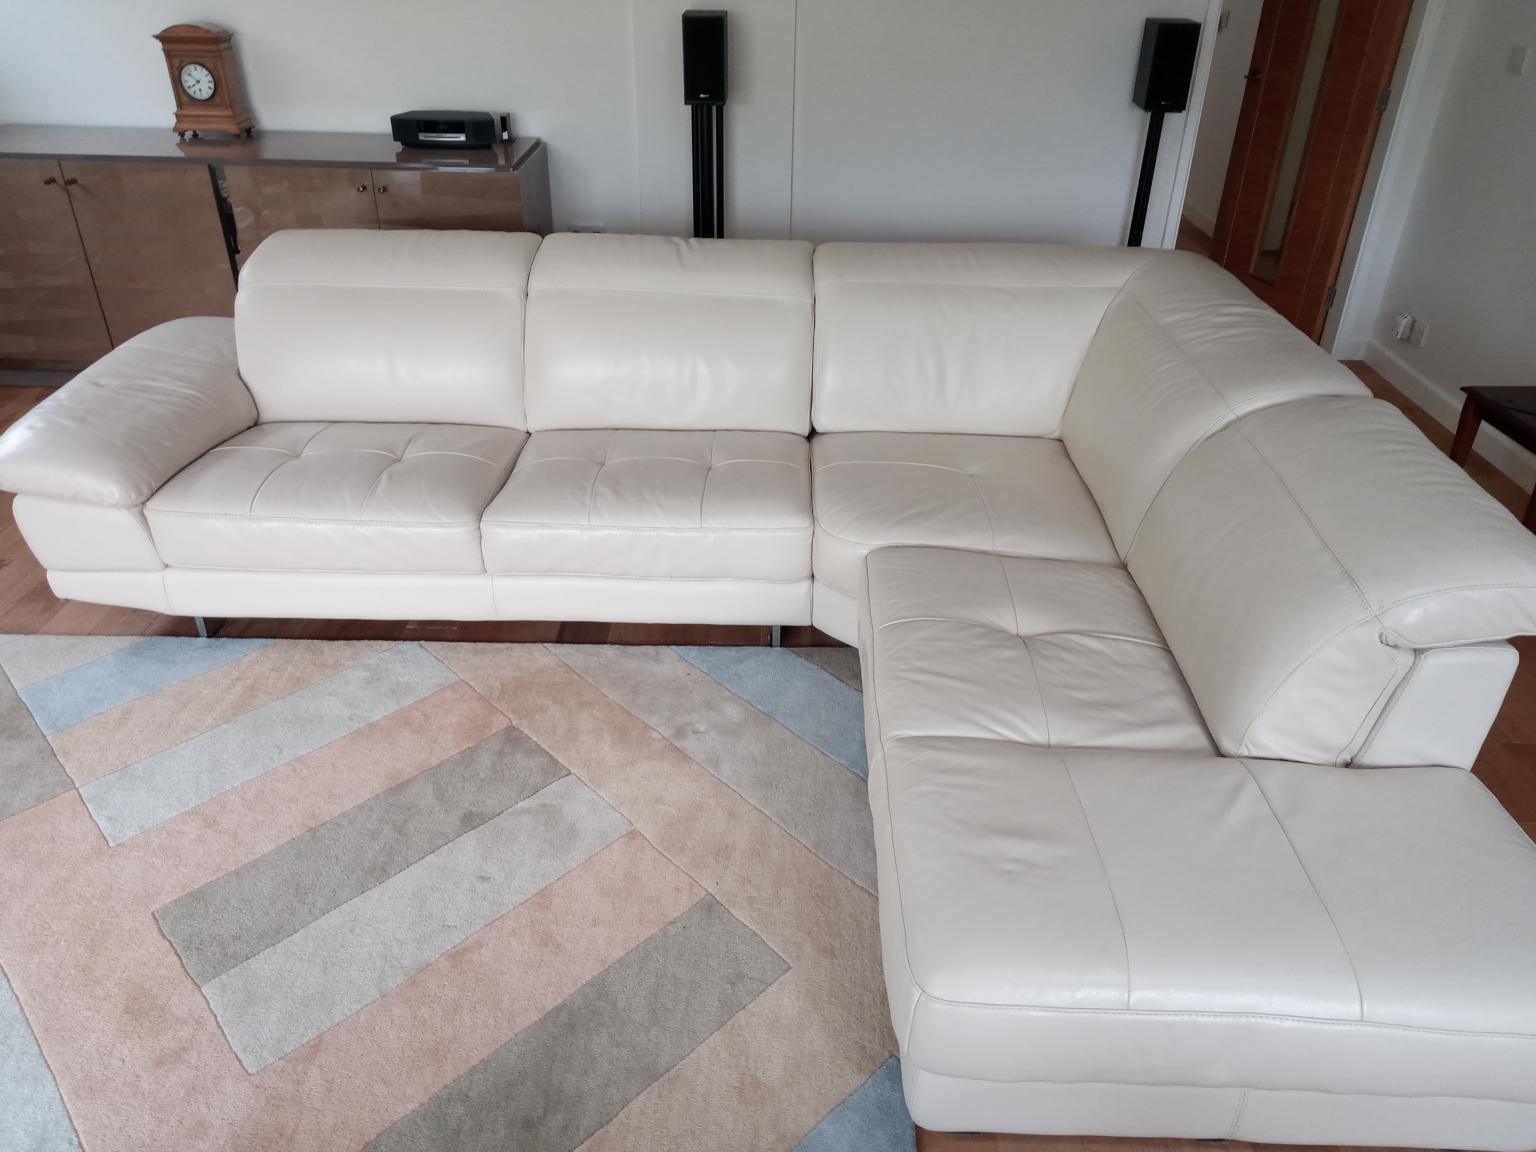 Corner Sofa Leather In Blaby For 500